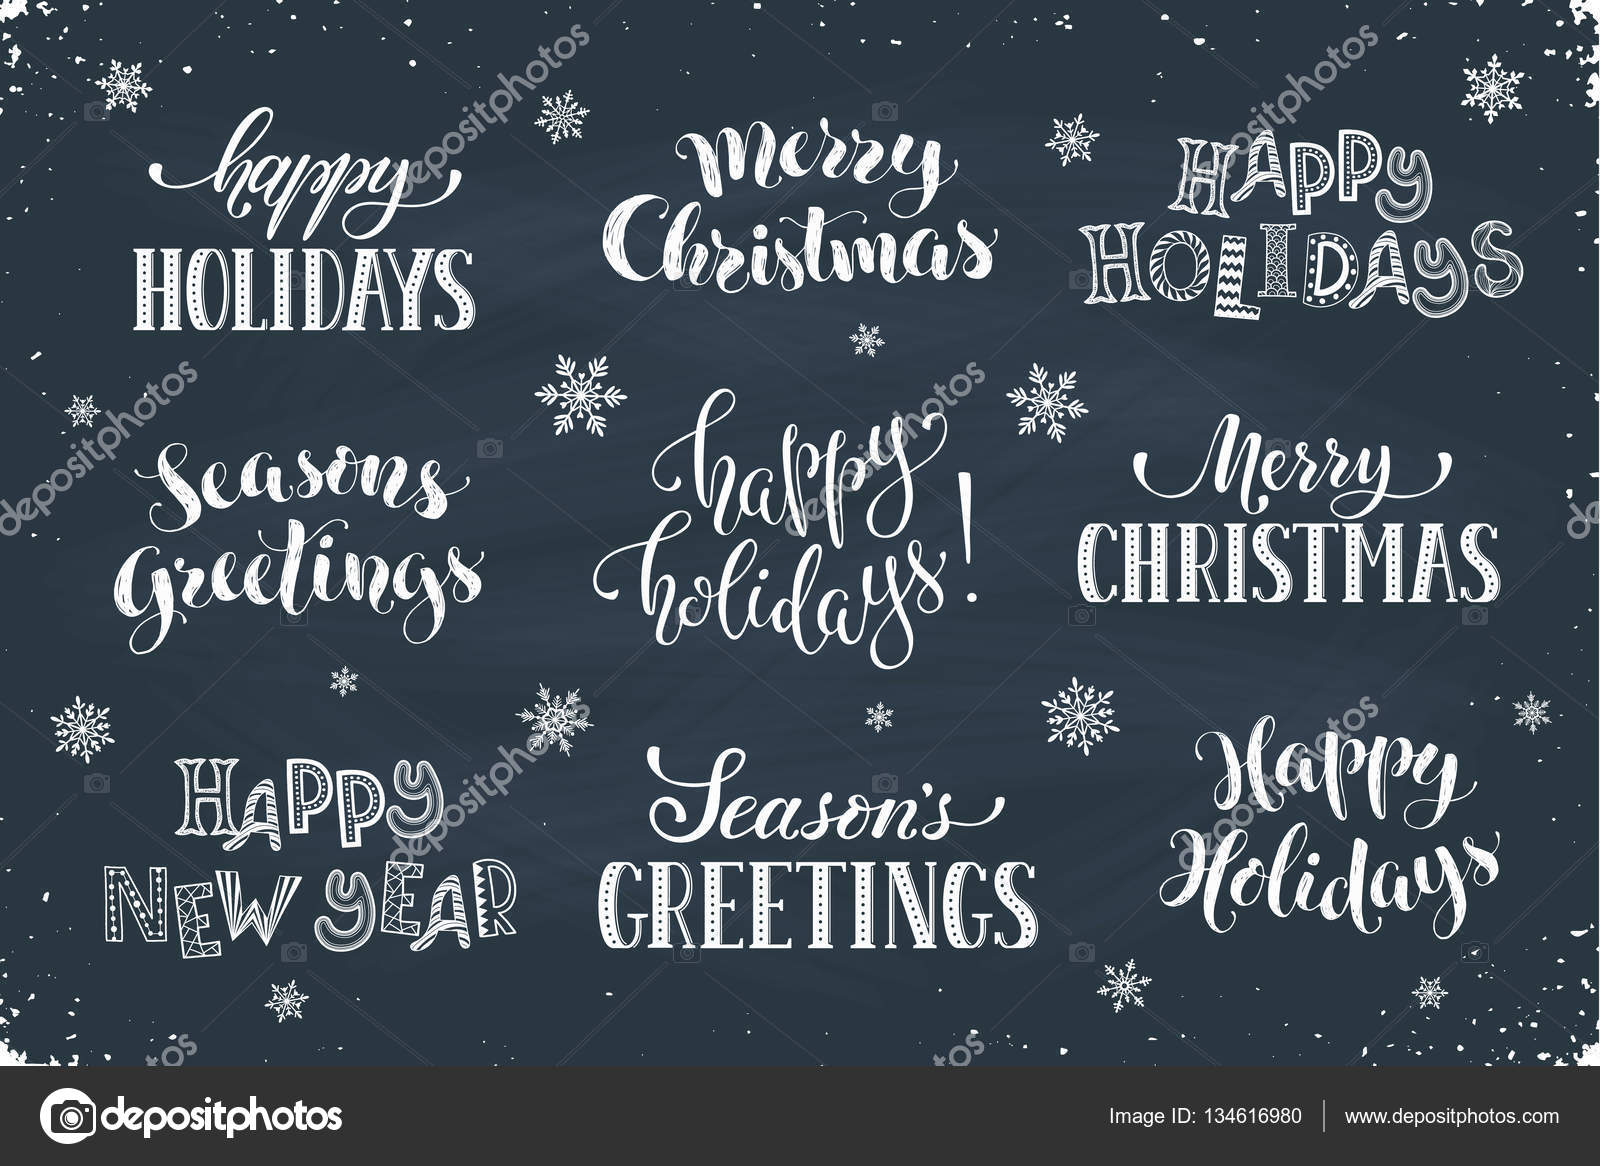 Happy holidays phrases stock vector ollymolly 134616980 greeting card text template with snowflakes drawn on chalkboard happy holidays lettering in modern calligraphy style merry christmas and seasons greetings kristyandbryce Choice Image